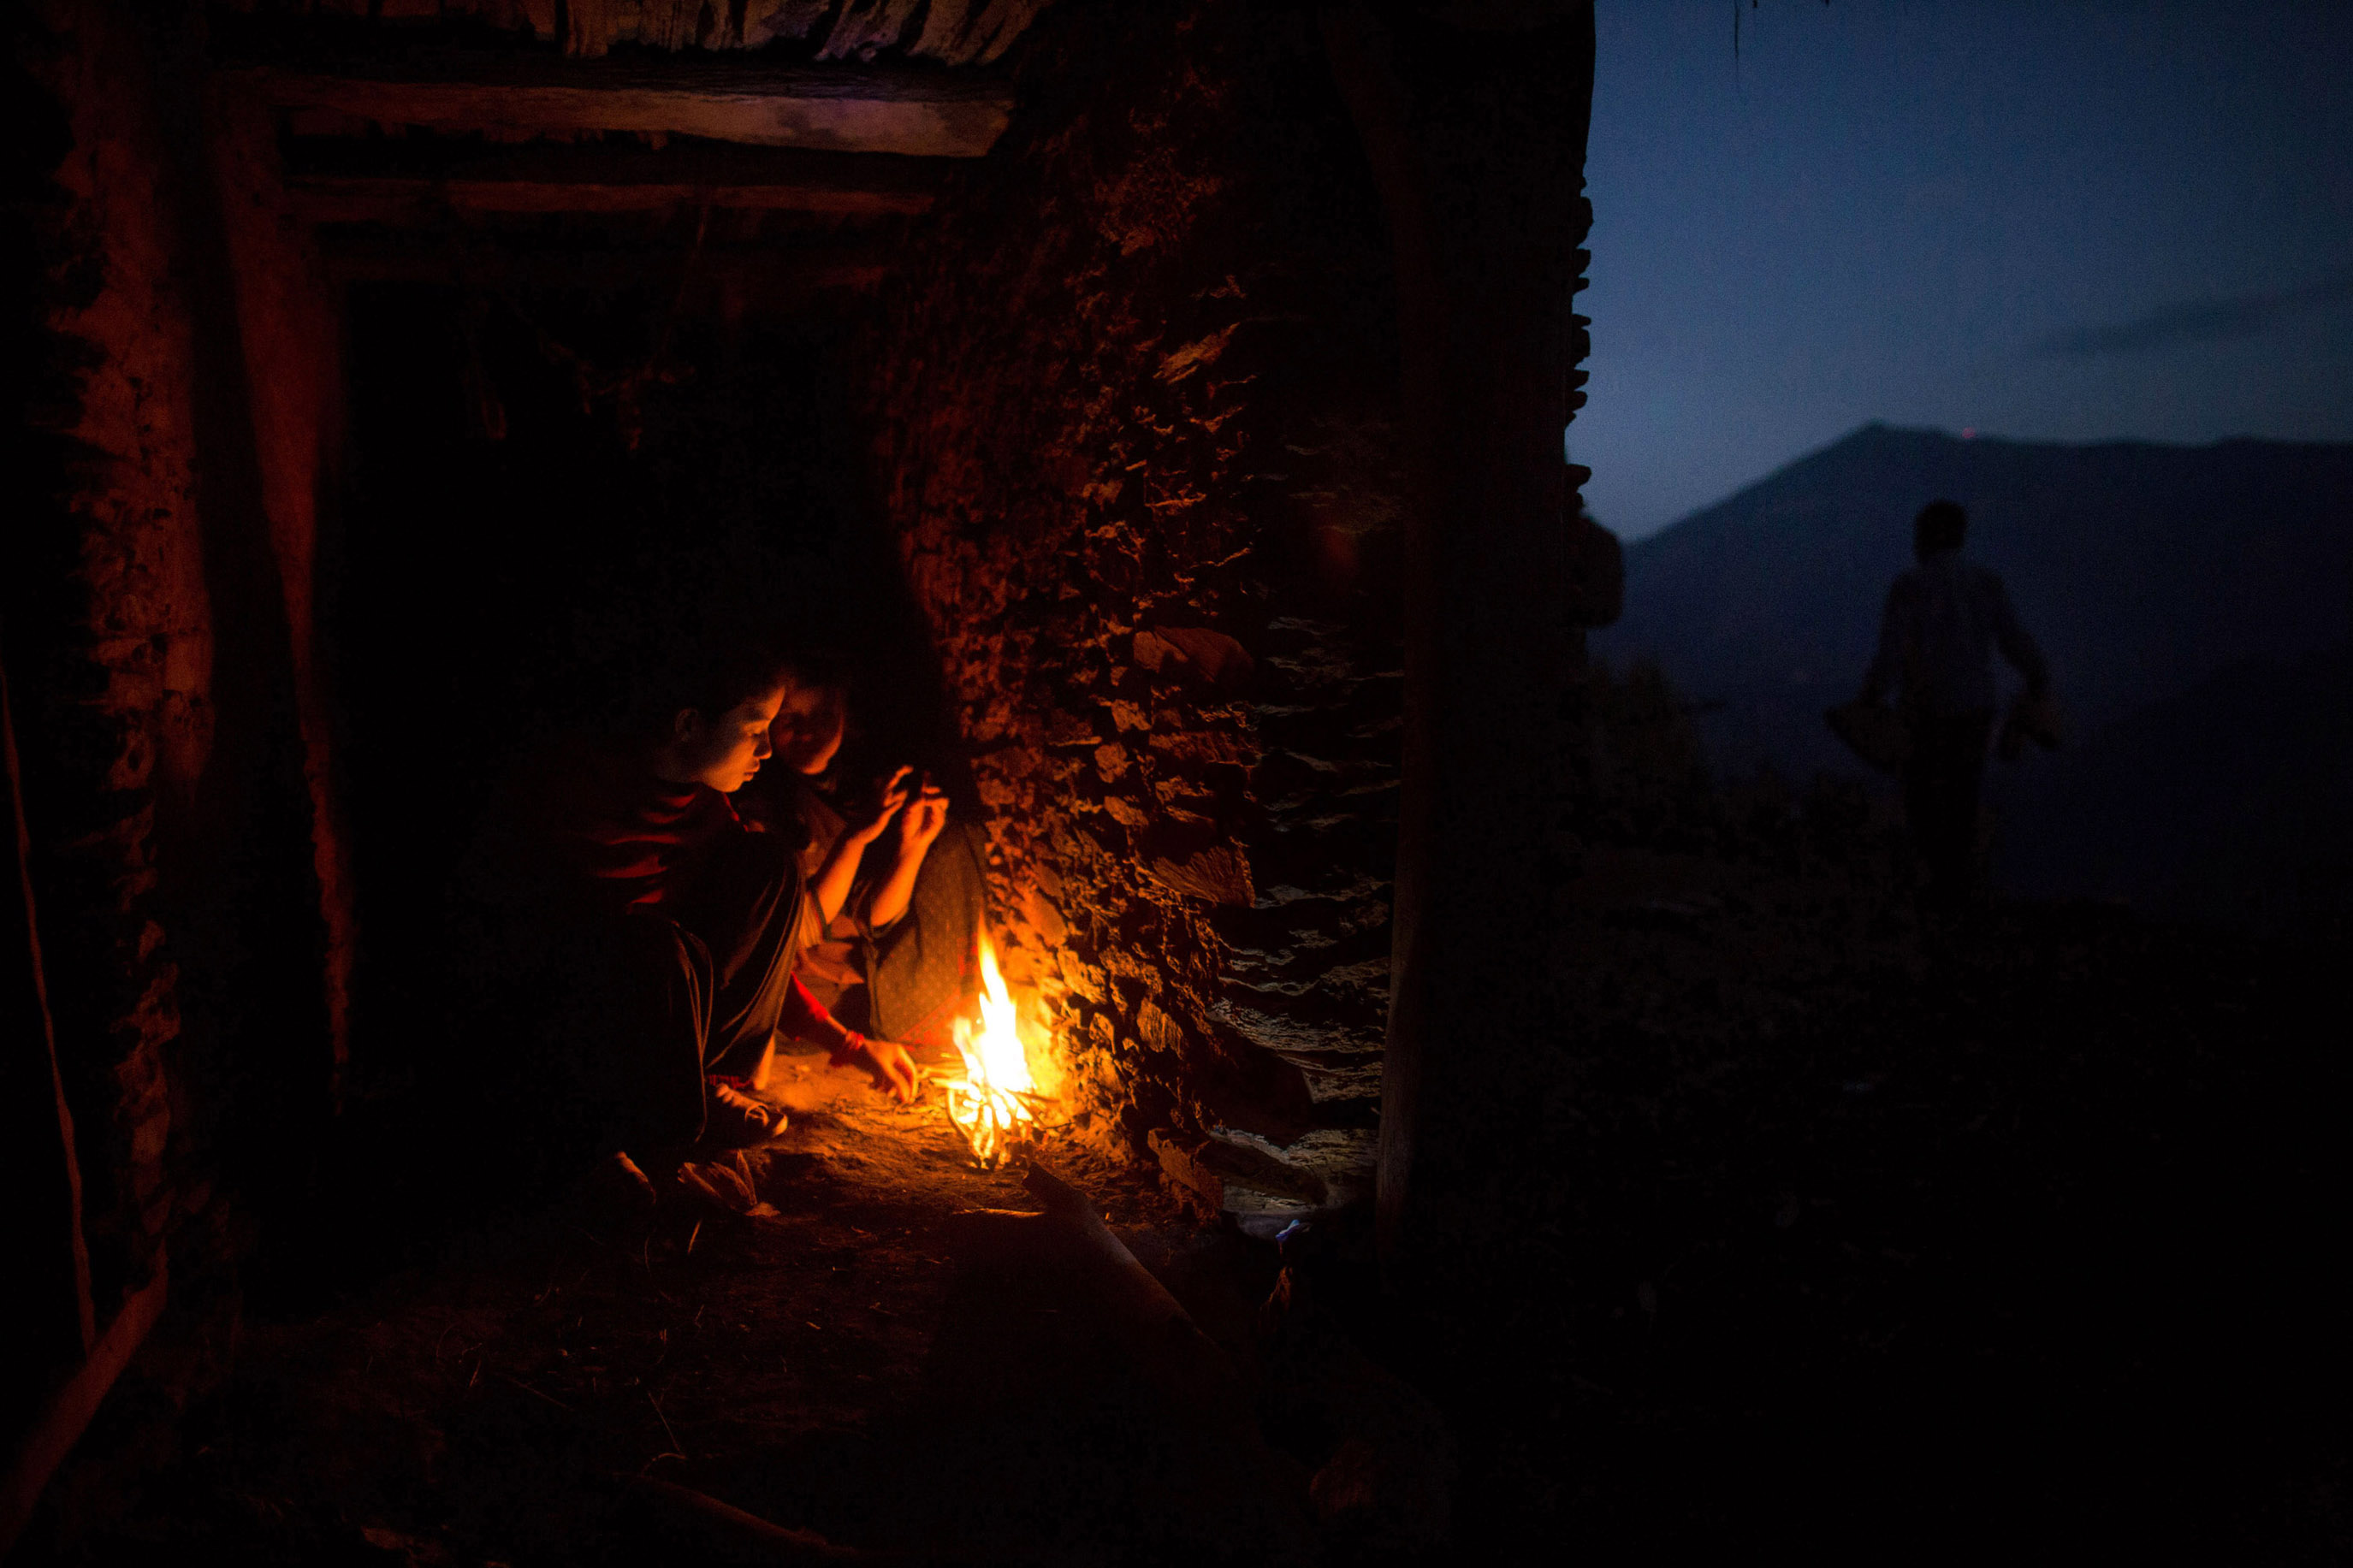 Nabina (left), 17, and Khadi, 12, huddle around a fire for warmth as they prepare to sleep in the household chaupadi shelter, a crawlspace with no door under the home shared with the family's animals.